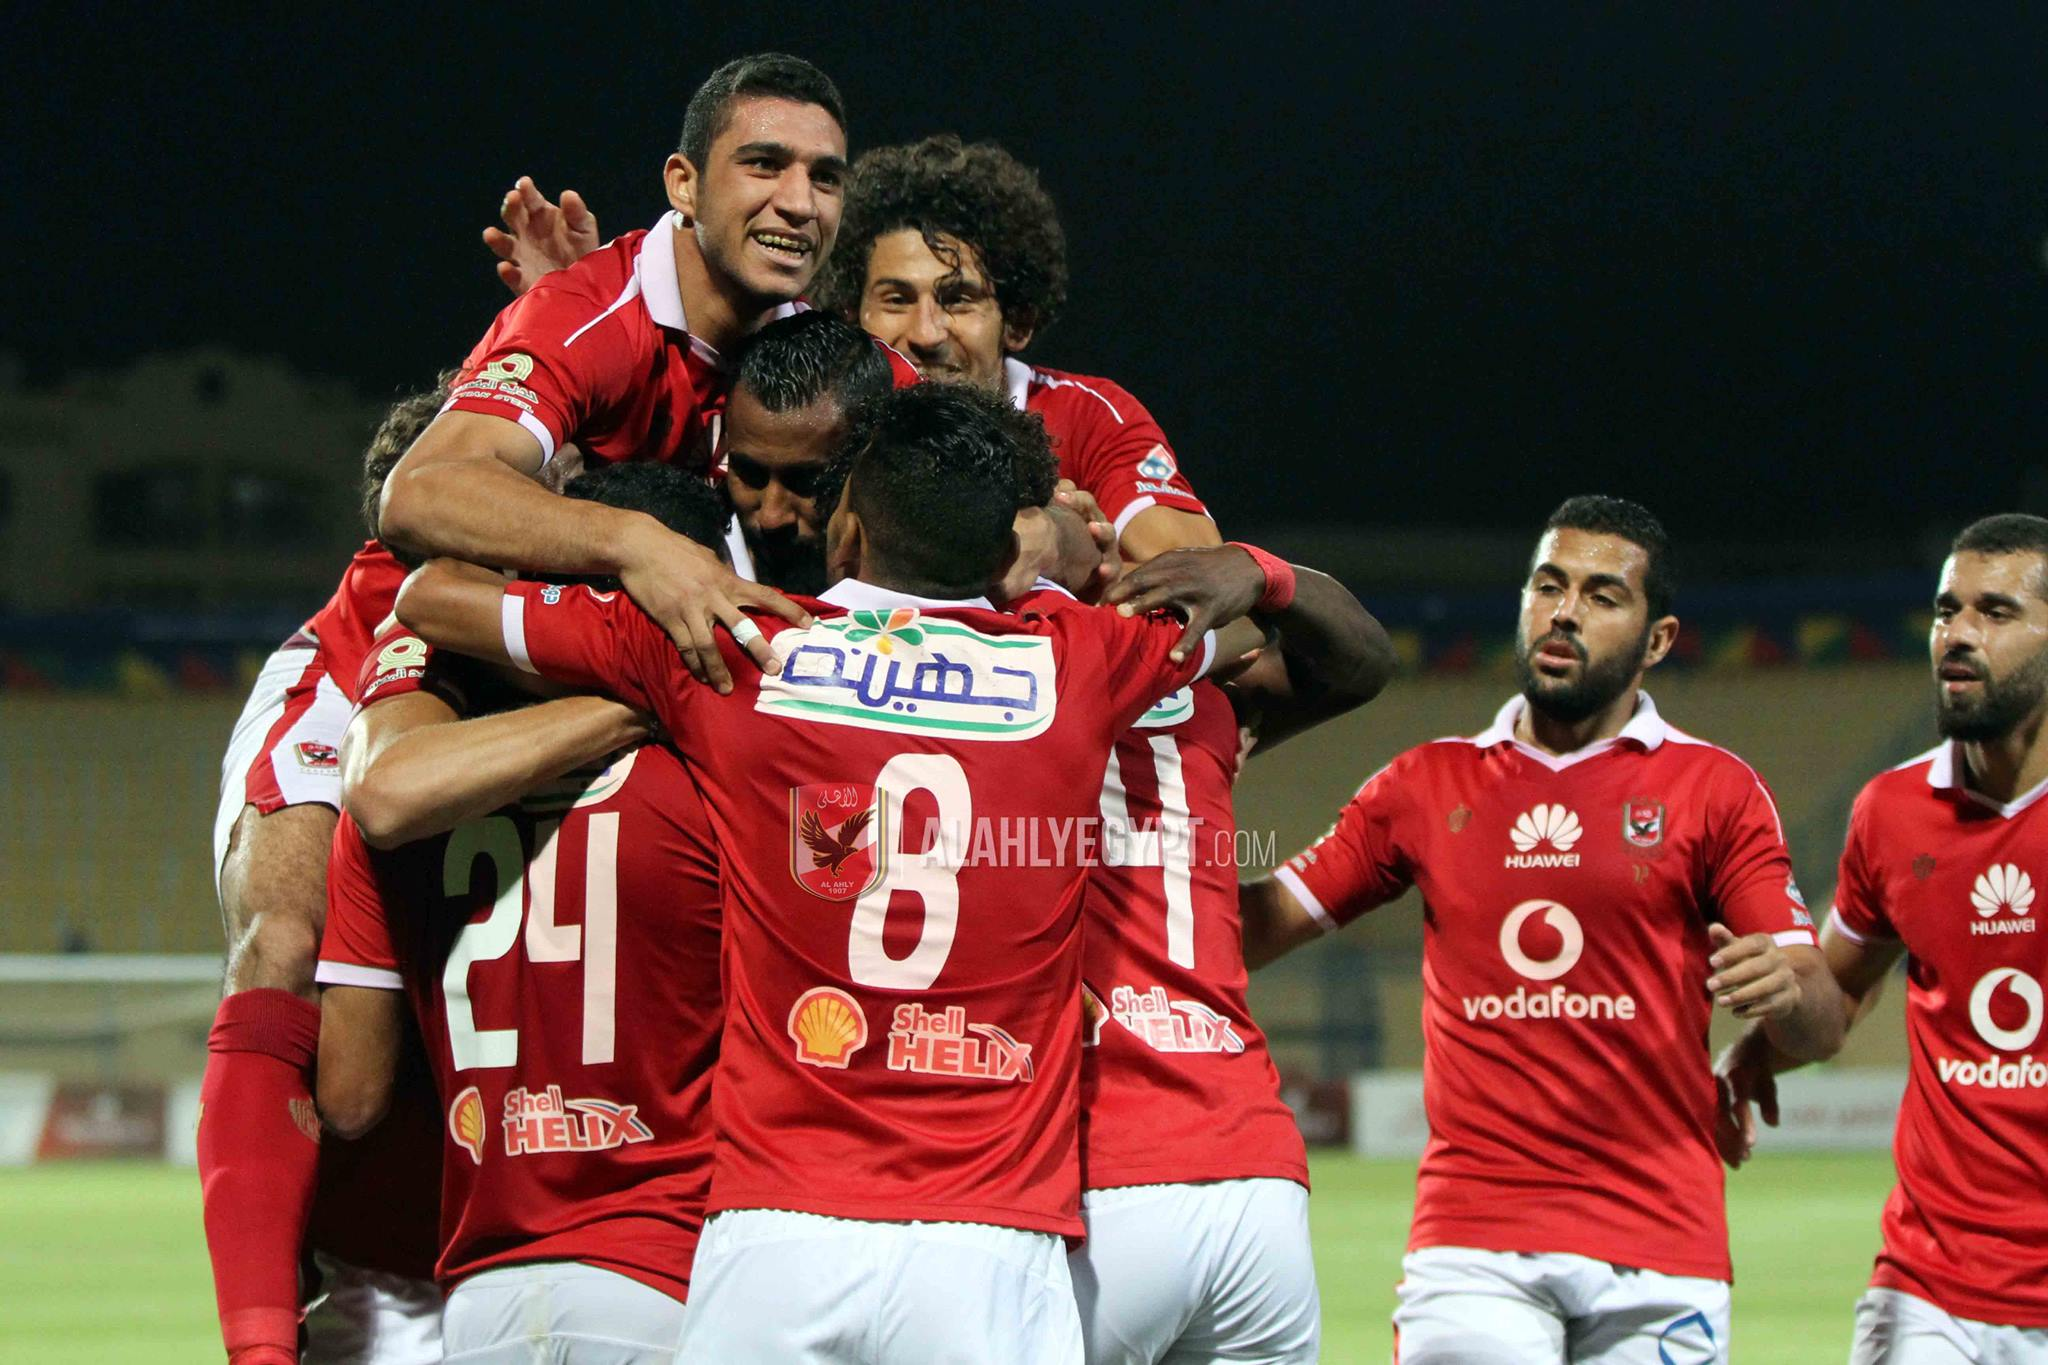 Photo: Al Ahly's official website